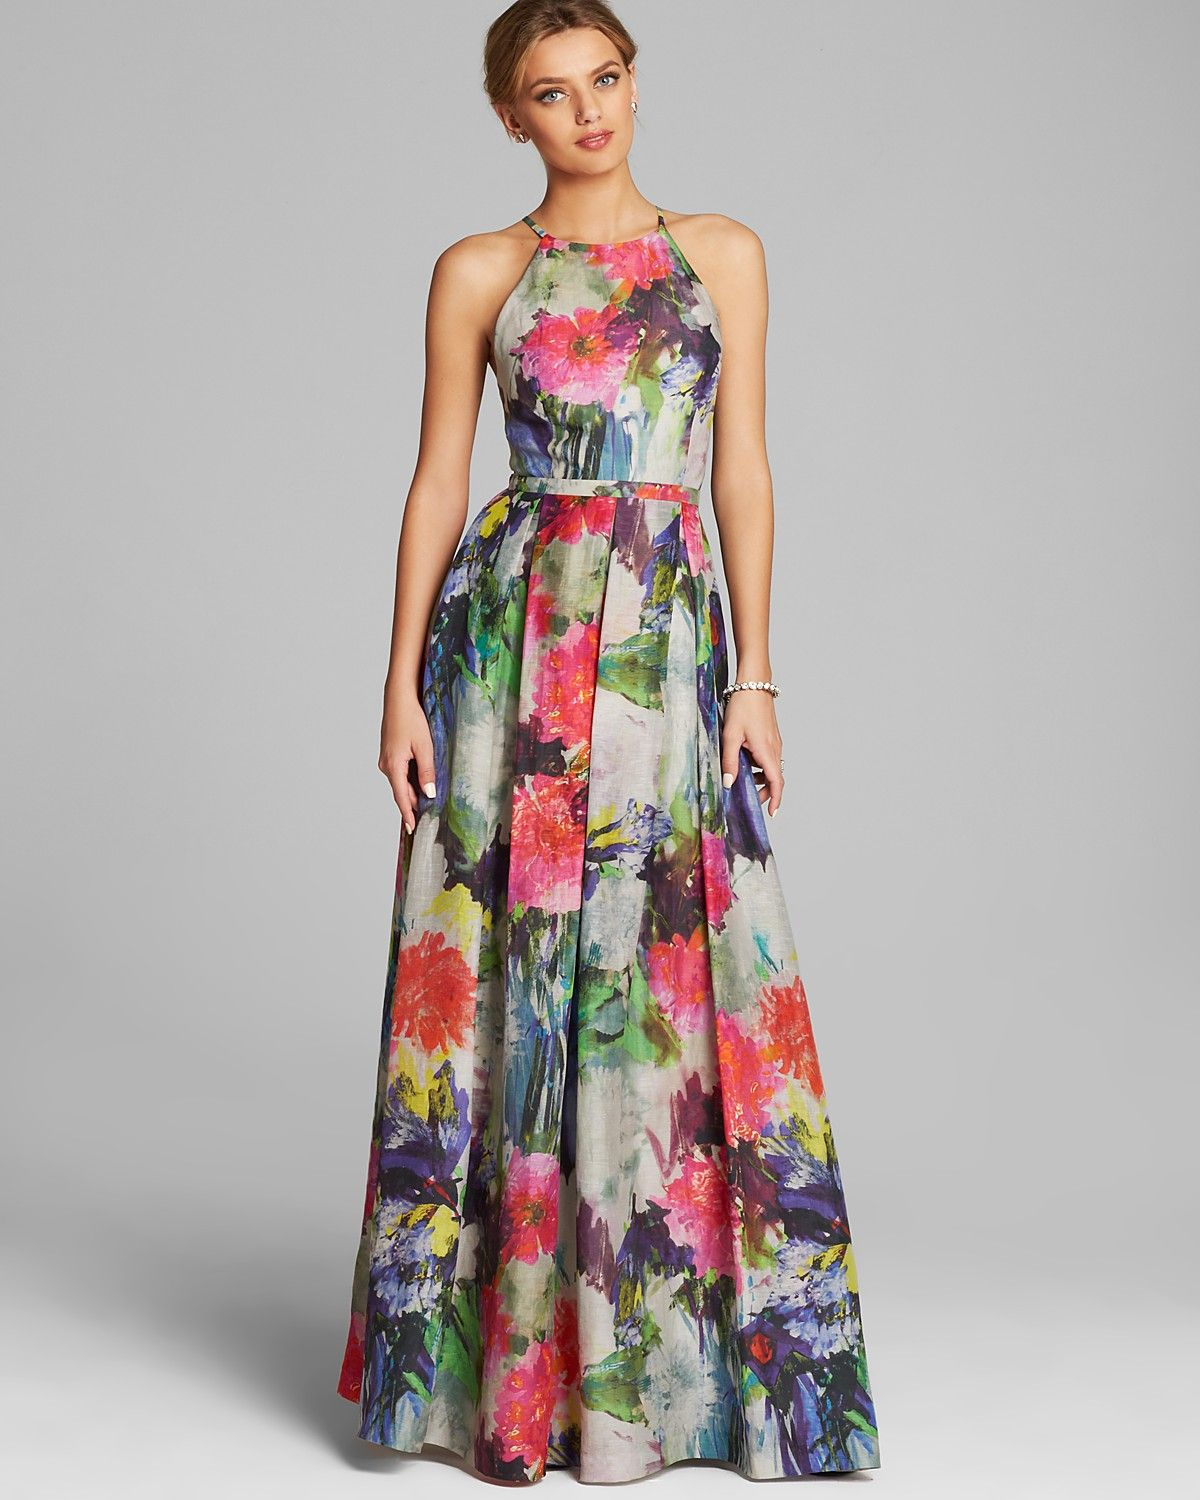 a386569da7 Phoebe by Kay Unger Gown - High Neck Sleeveless Floral Print ...